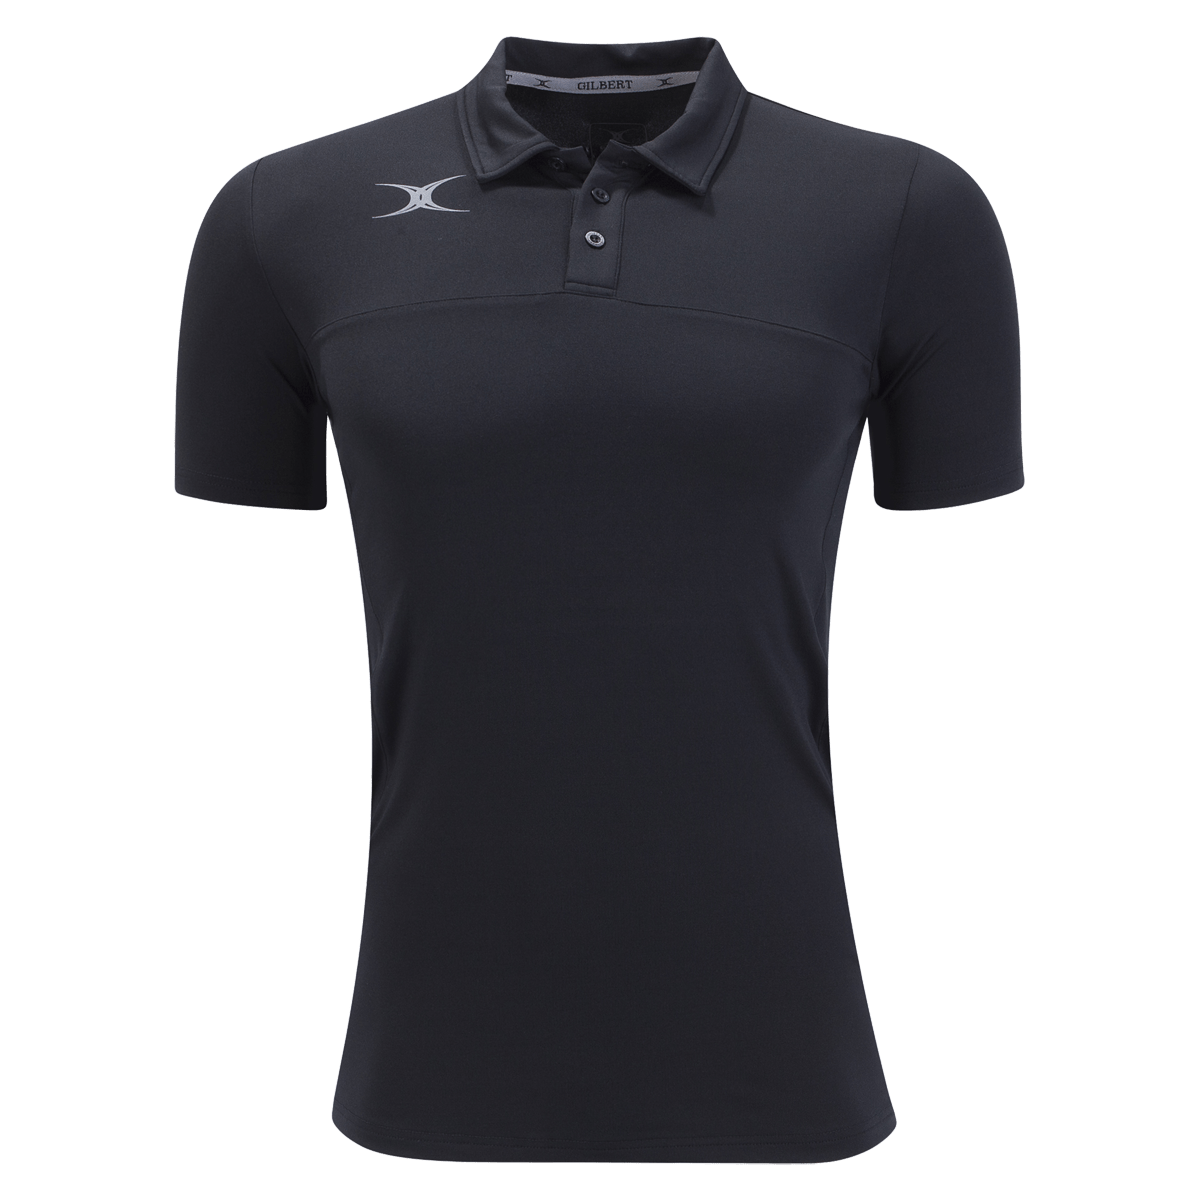 Gilbert Black Pro Tech Polo Shirt